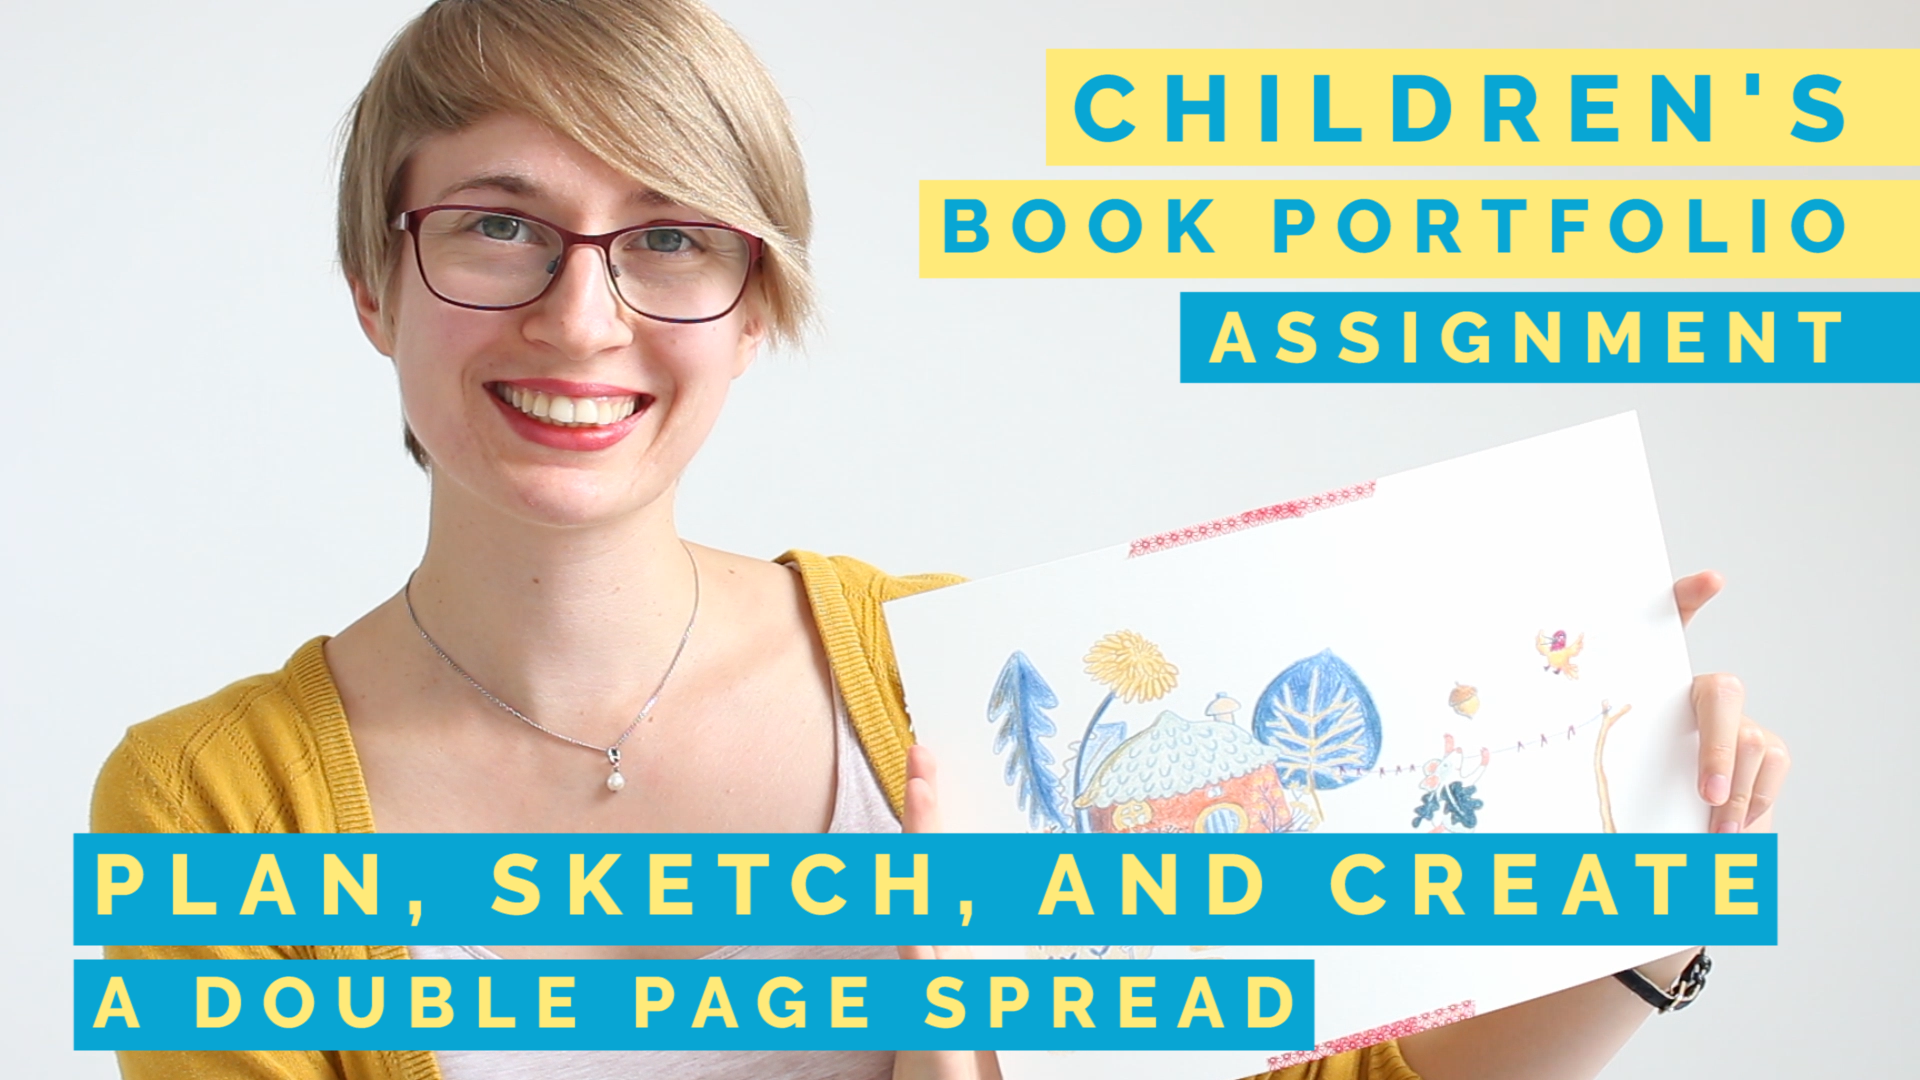 childrens picture book assignment with prompts, self-paced online course for beginners by romica spiegl-jones